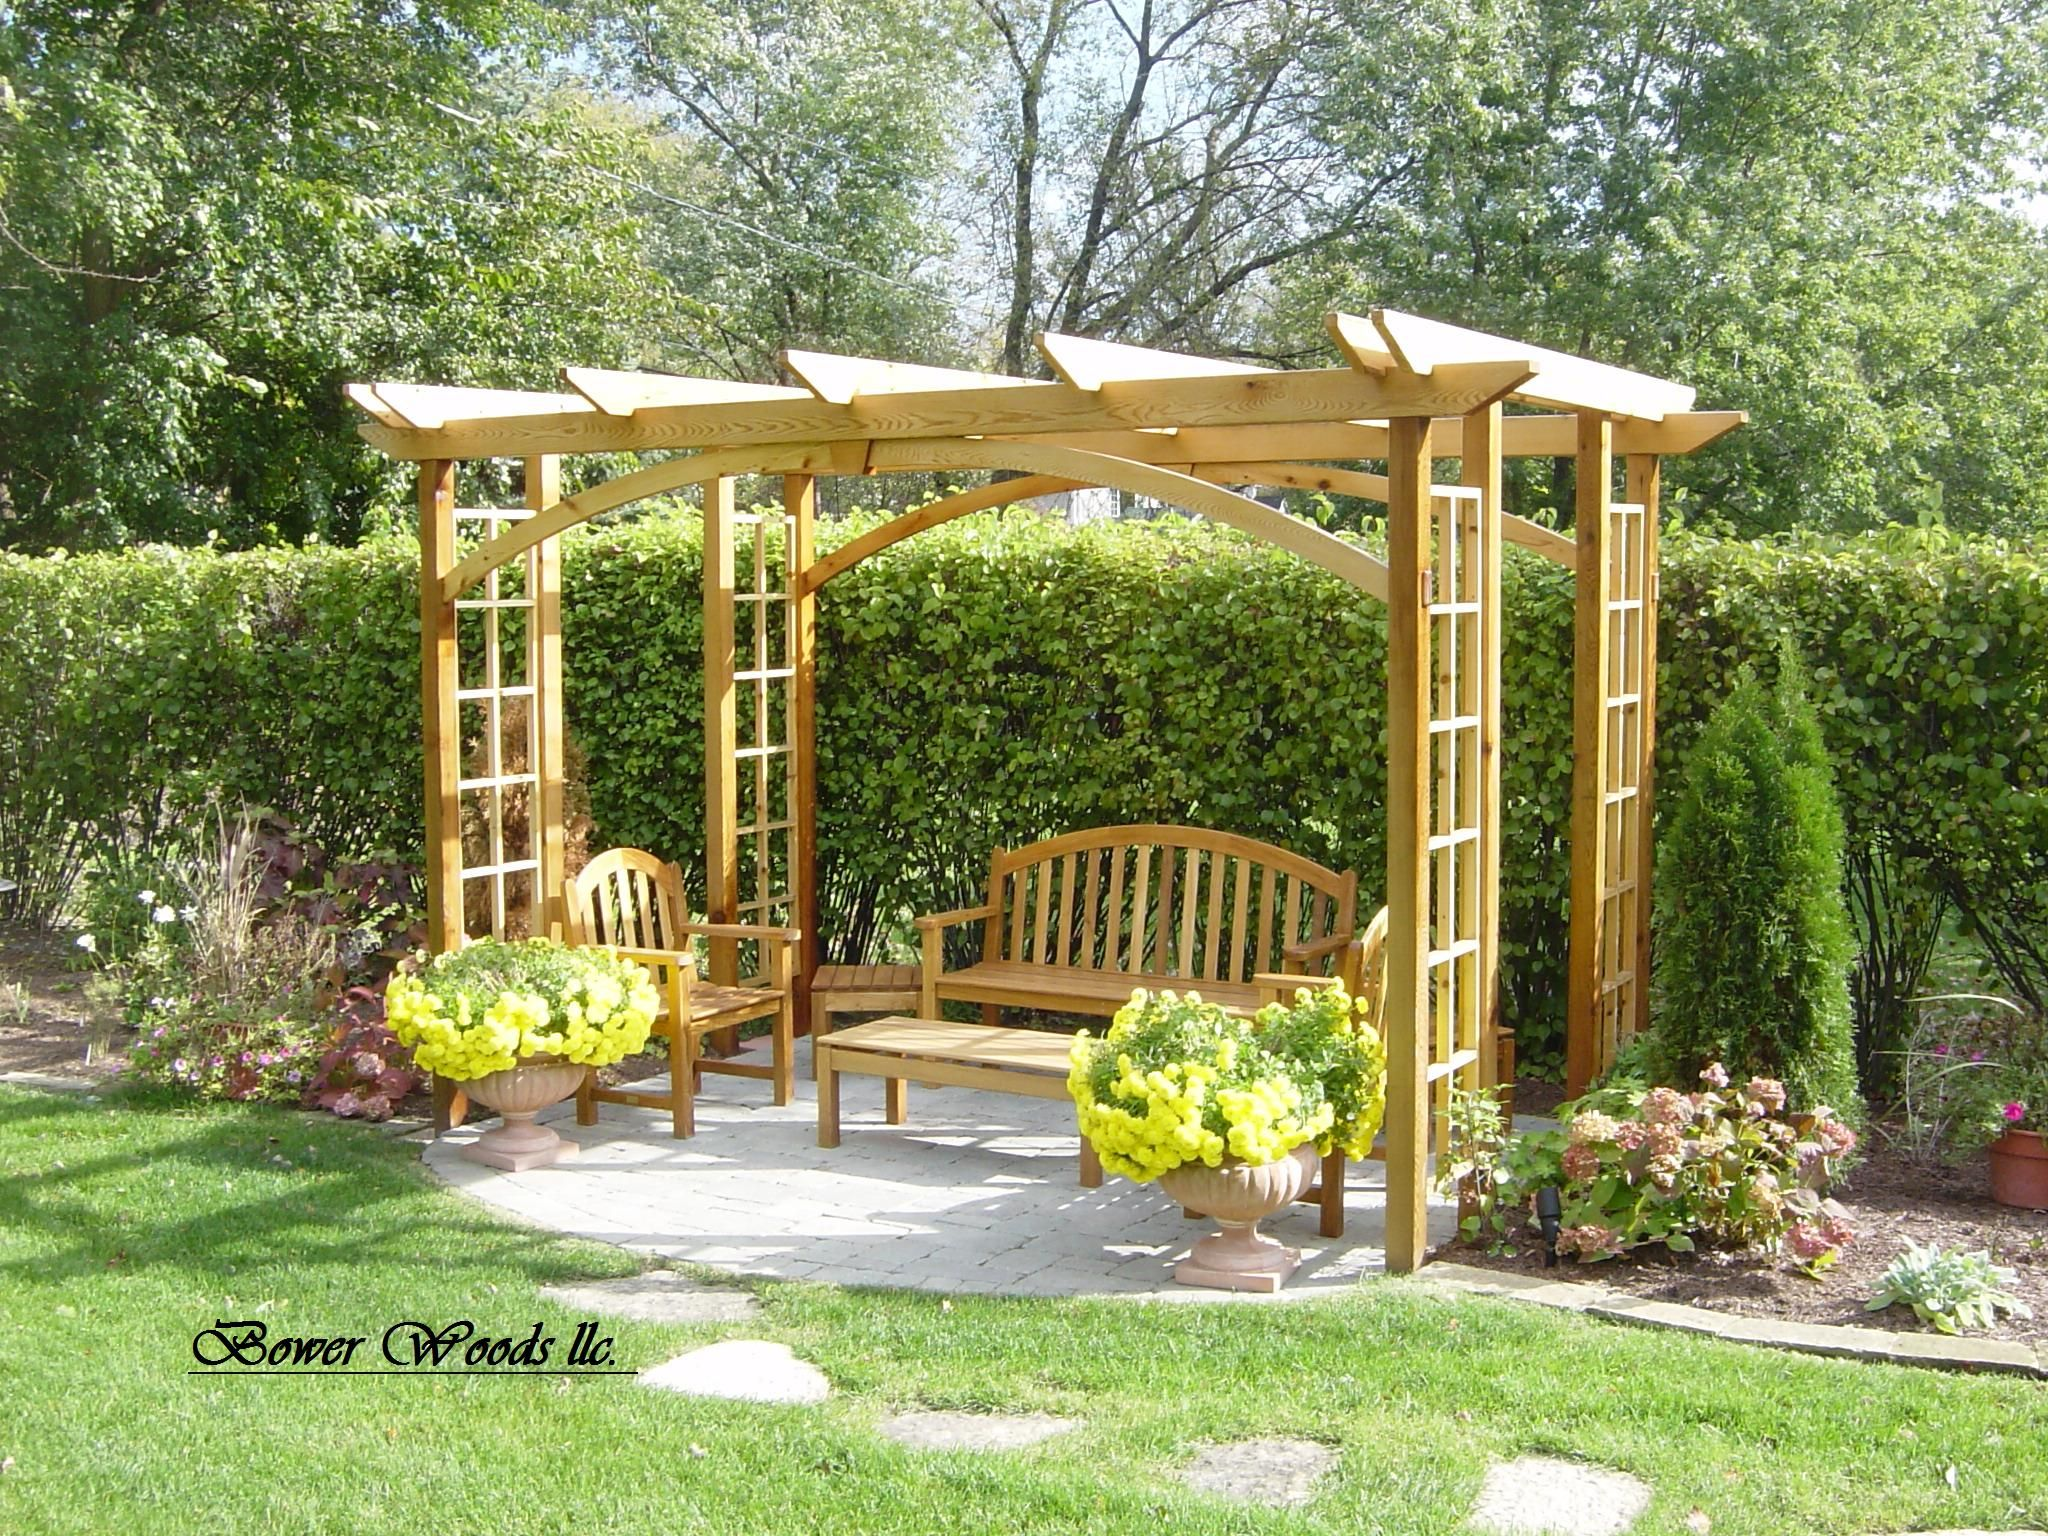 Construire une pergola pergolas garden structures and craftsman style for Plans de pergola